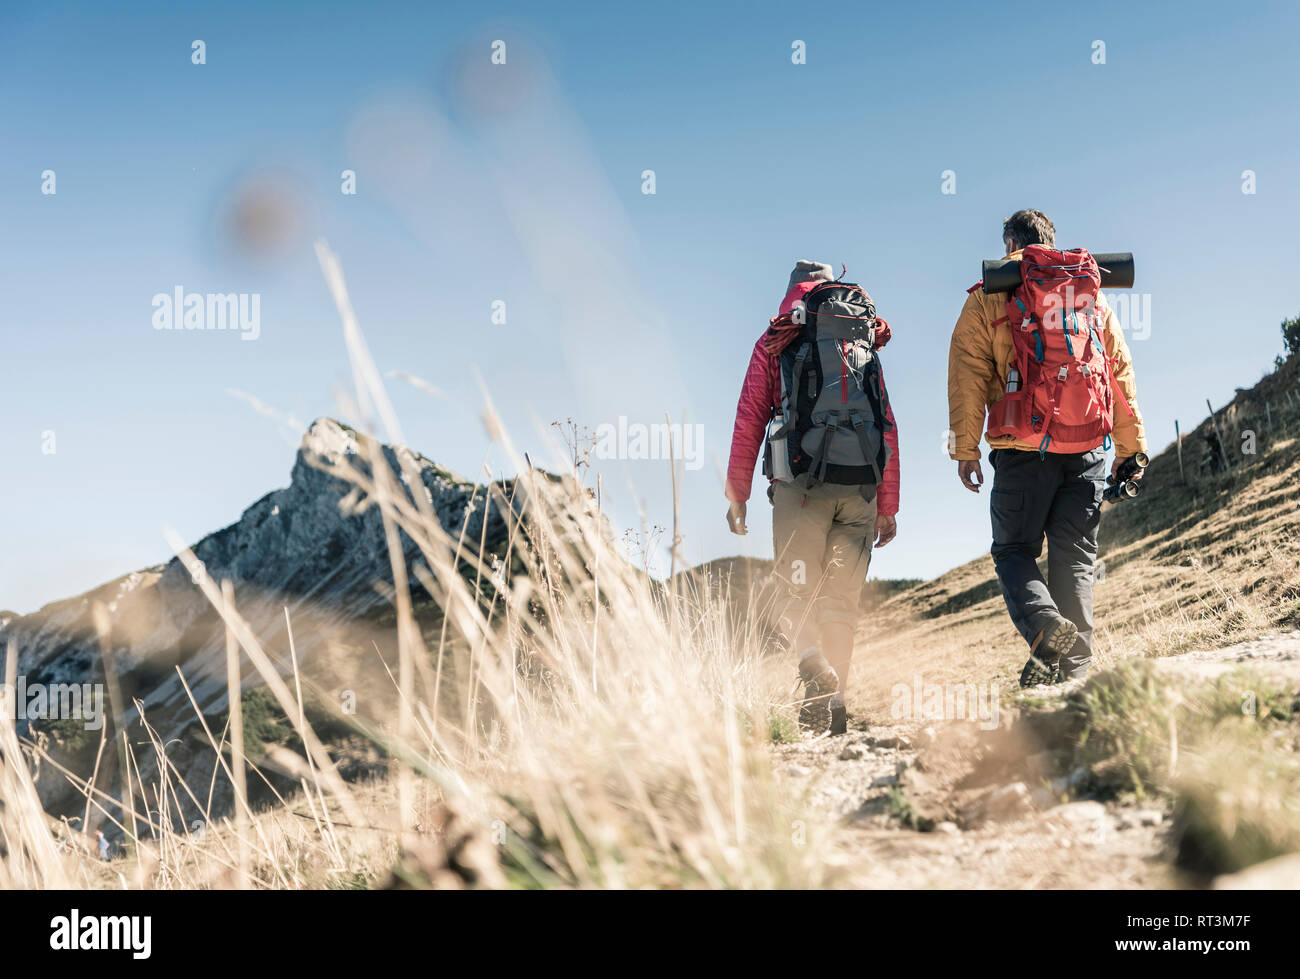 Austria, Tyrol, couple hiking in the mountains - Stock Image